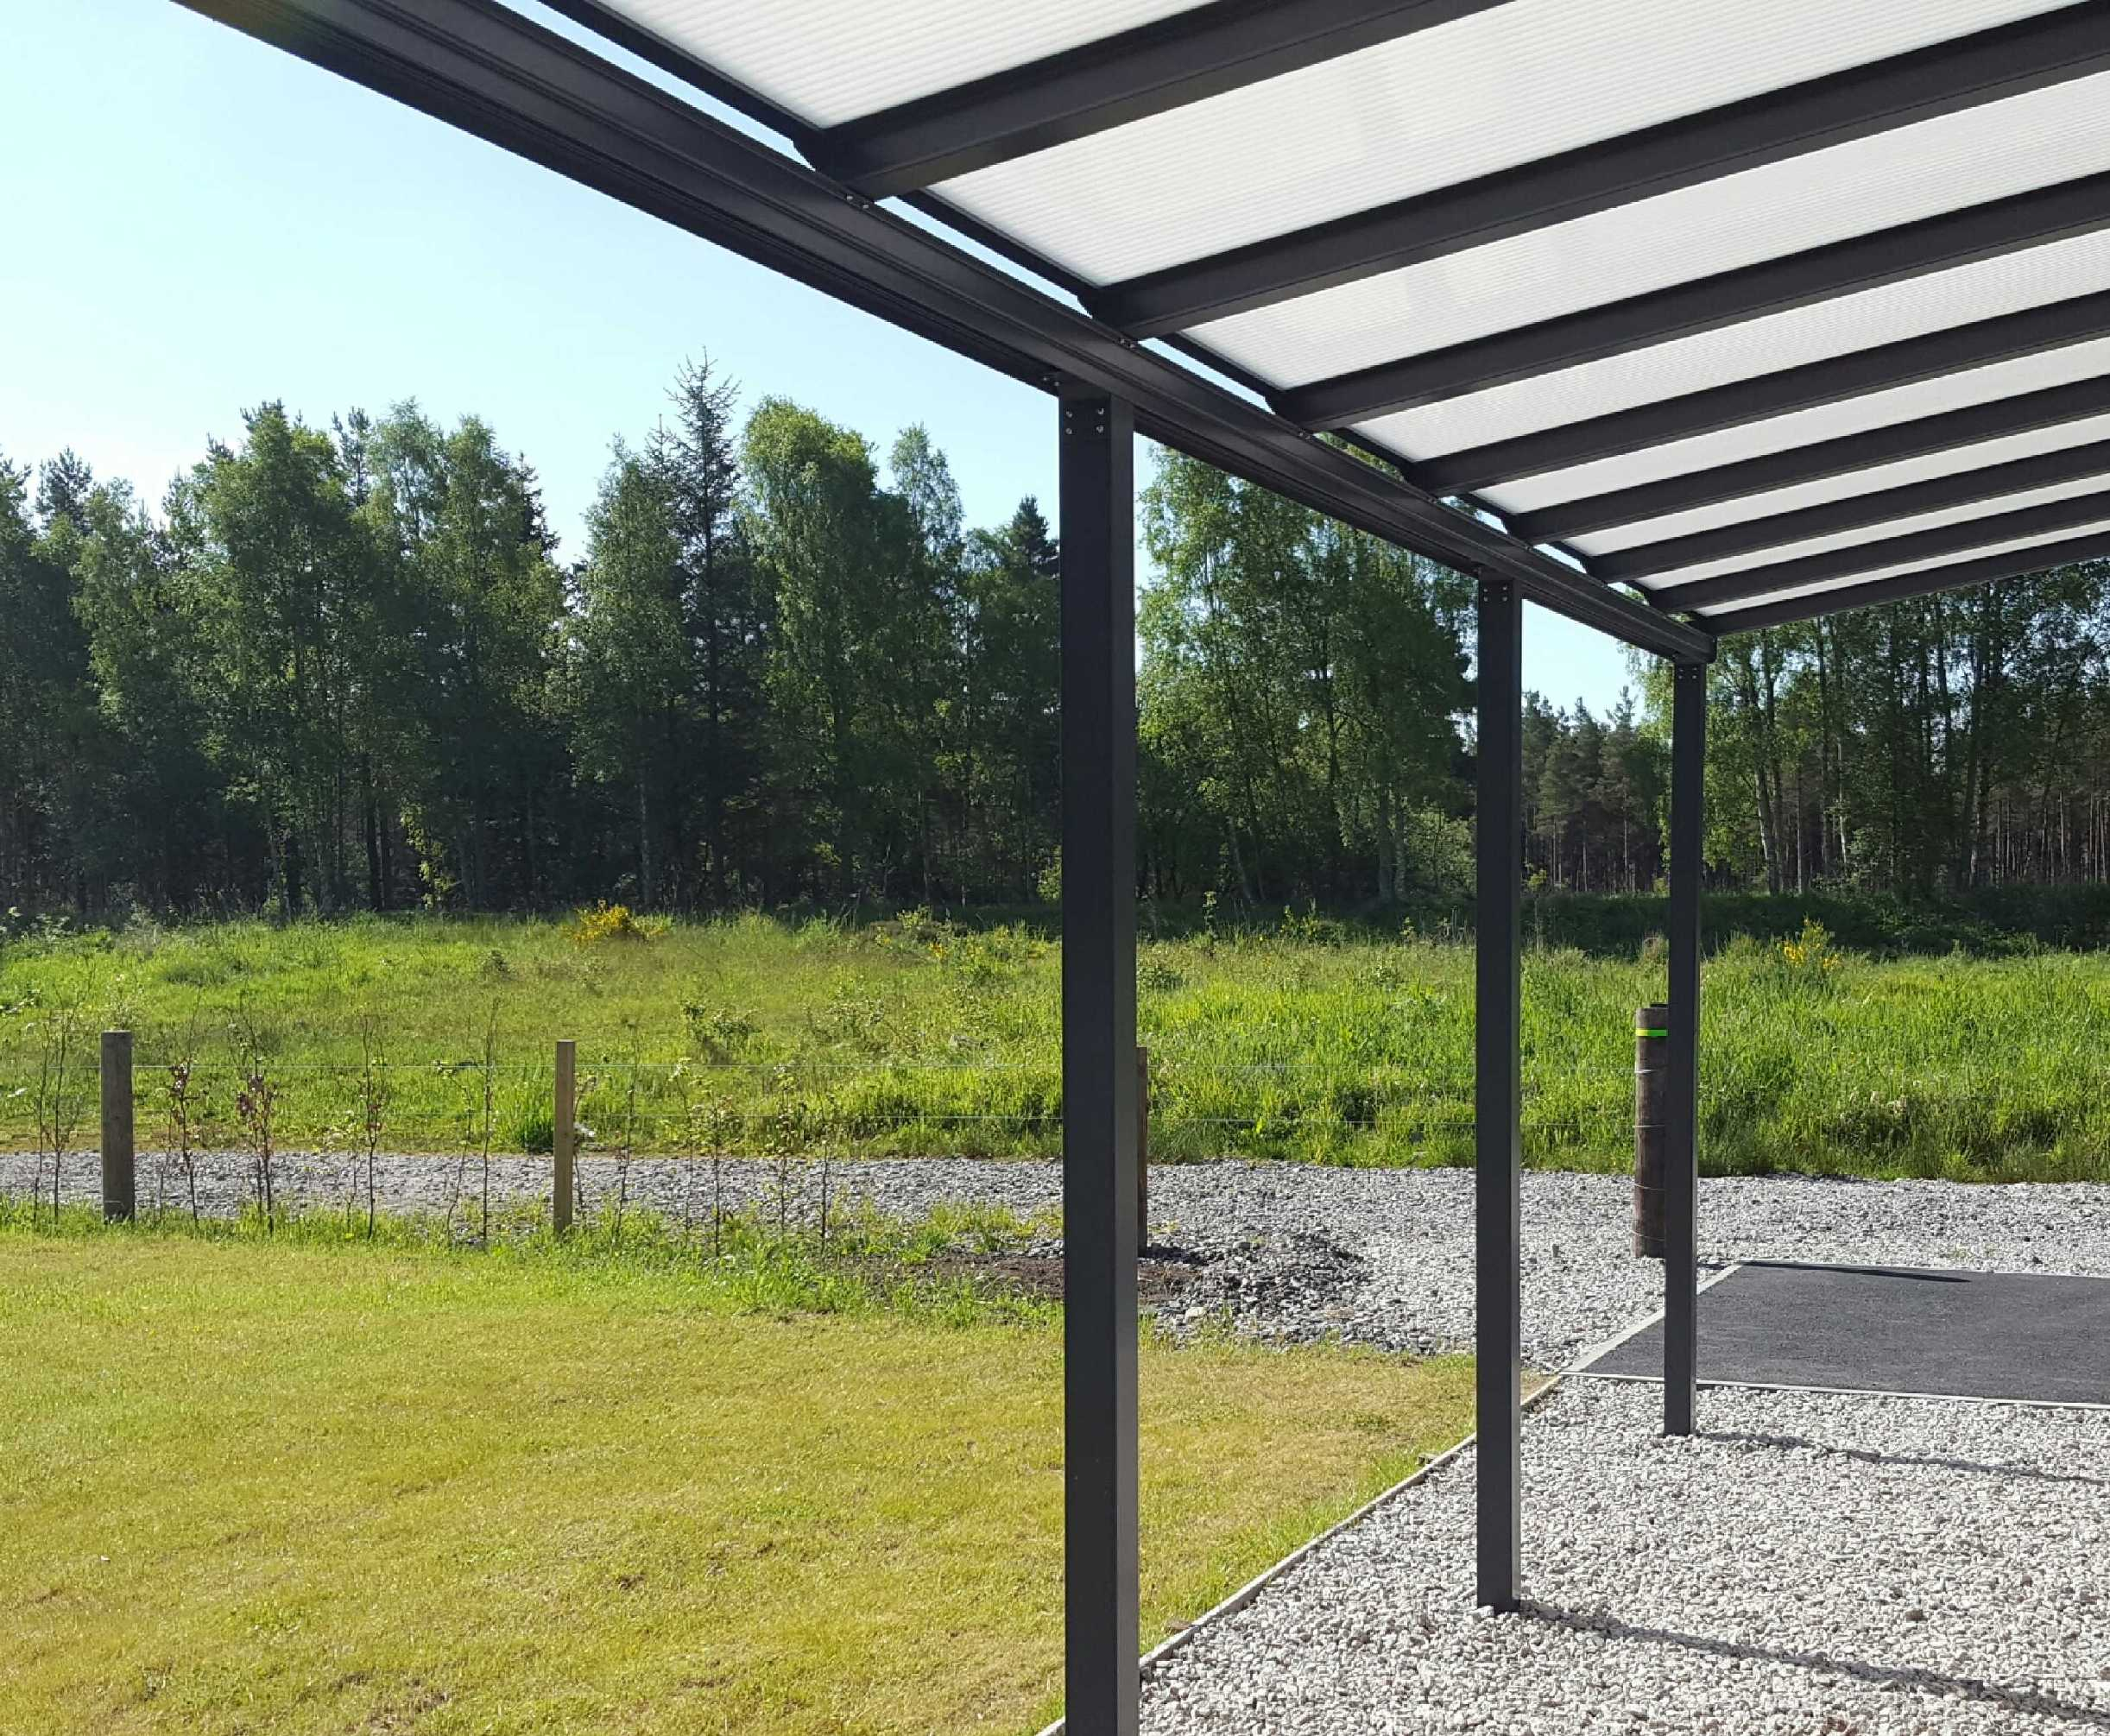 Omega Smart Lean-To Canopy, Anthracite Grey, 16mm Polycarbonate Glazing - 4.2m (W) x 3.0m (P), (3) Supporting Posts